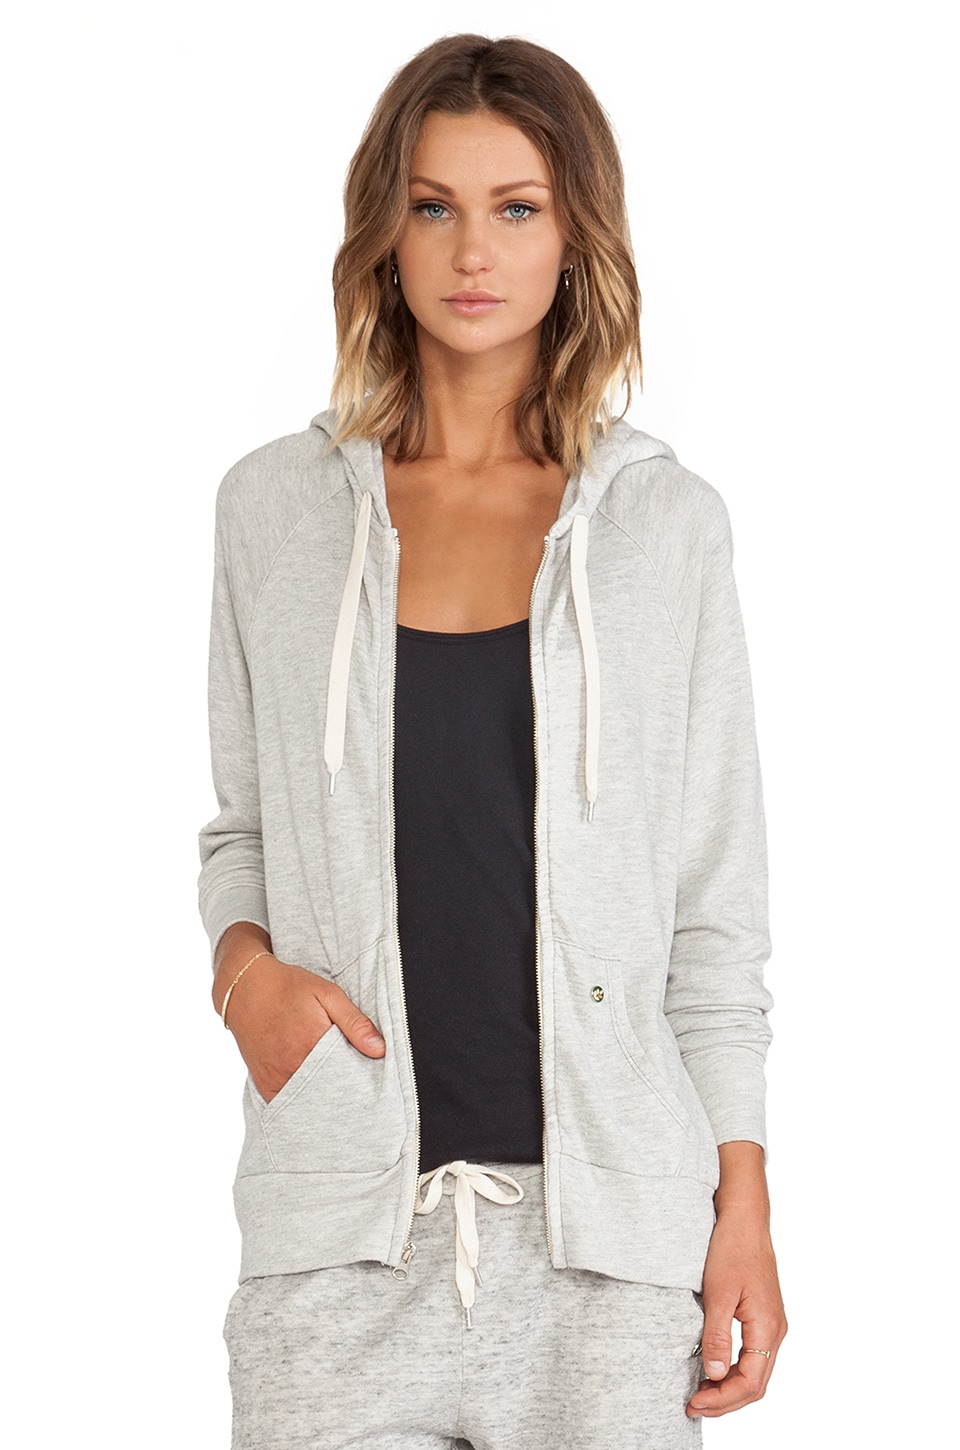 EVER Dakota Thermal Lined Zip-Up Hoodie in Heather Grey